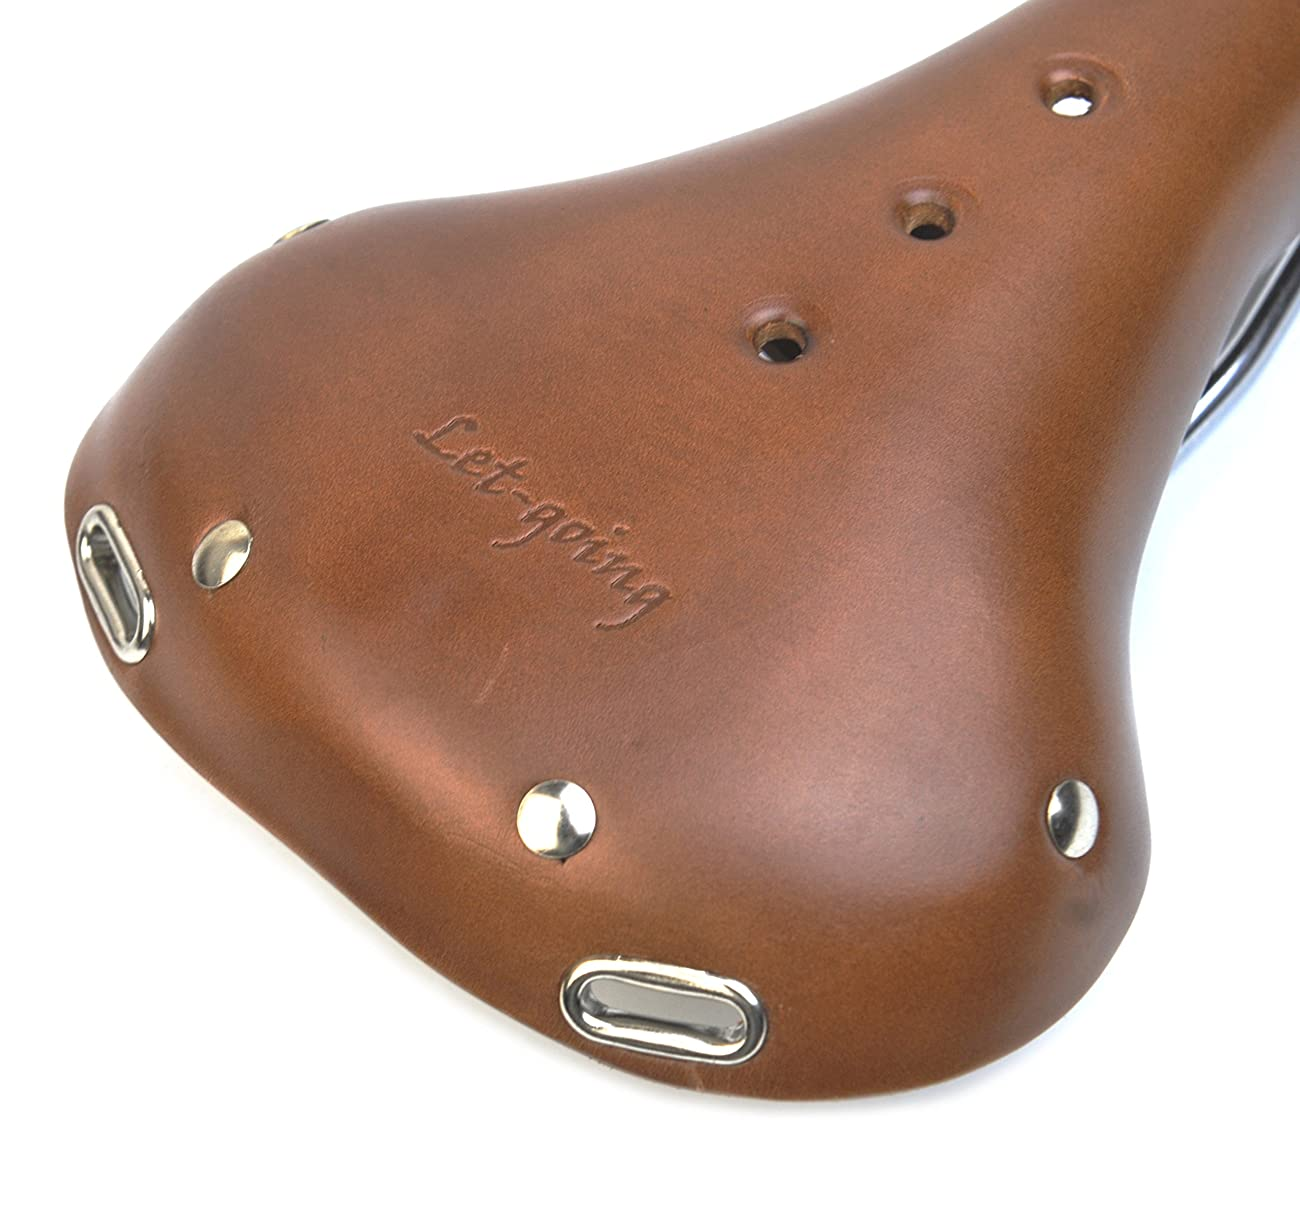 England Vintage Cycling Fixie Road Bike Turbo Brown Seat Saddle Pure Leather 4